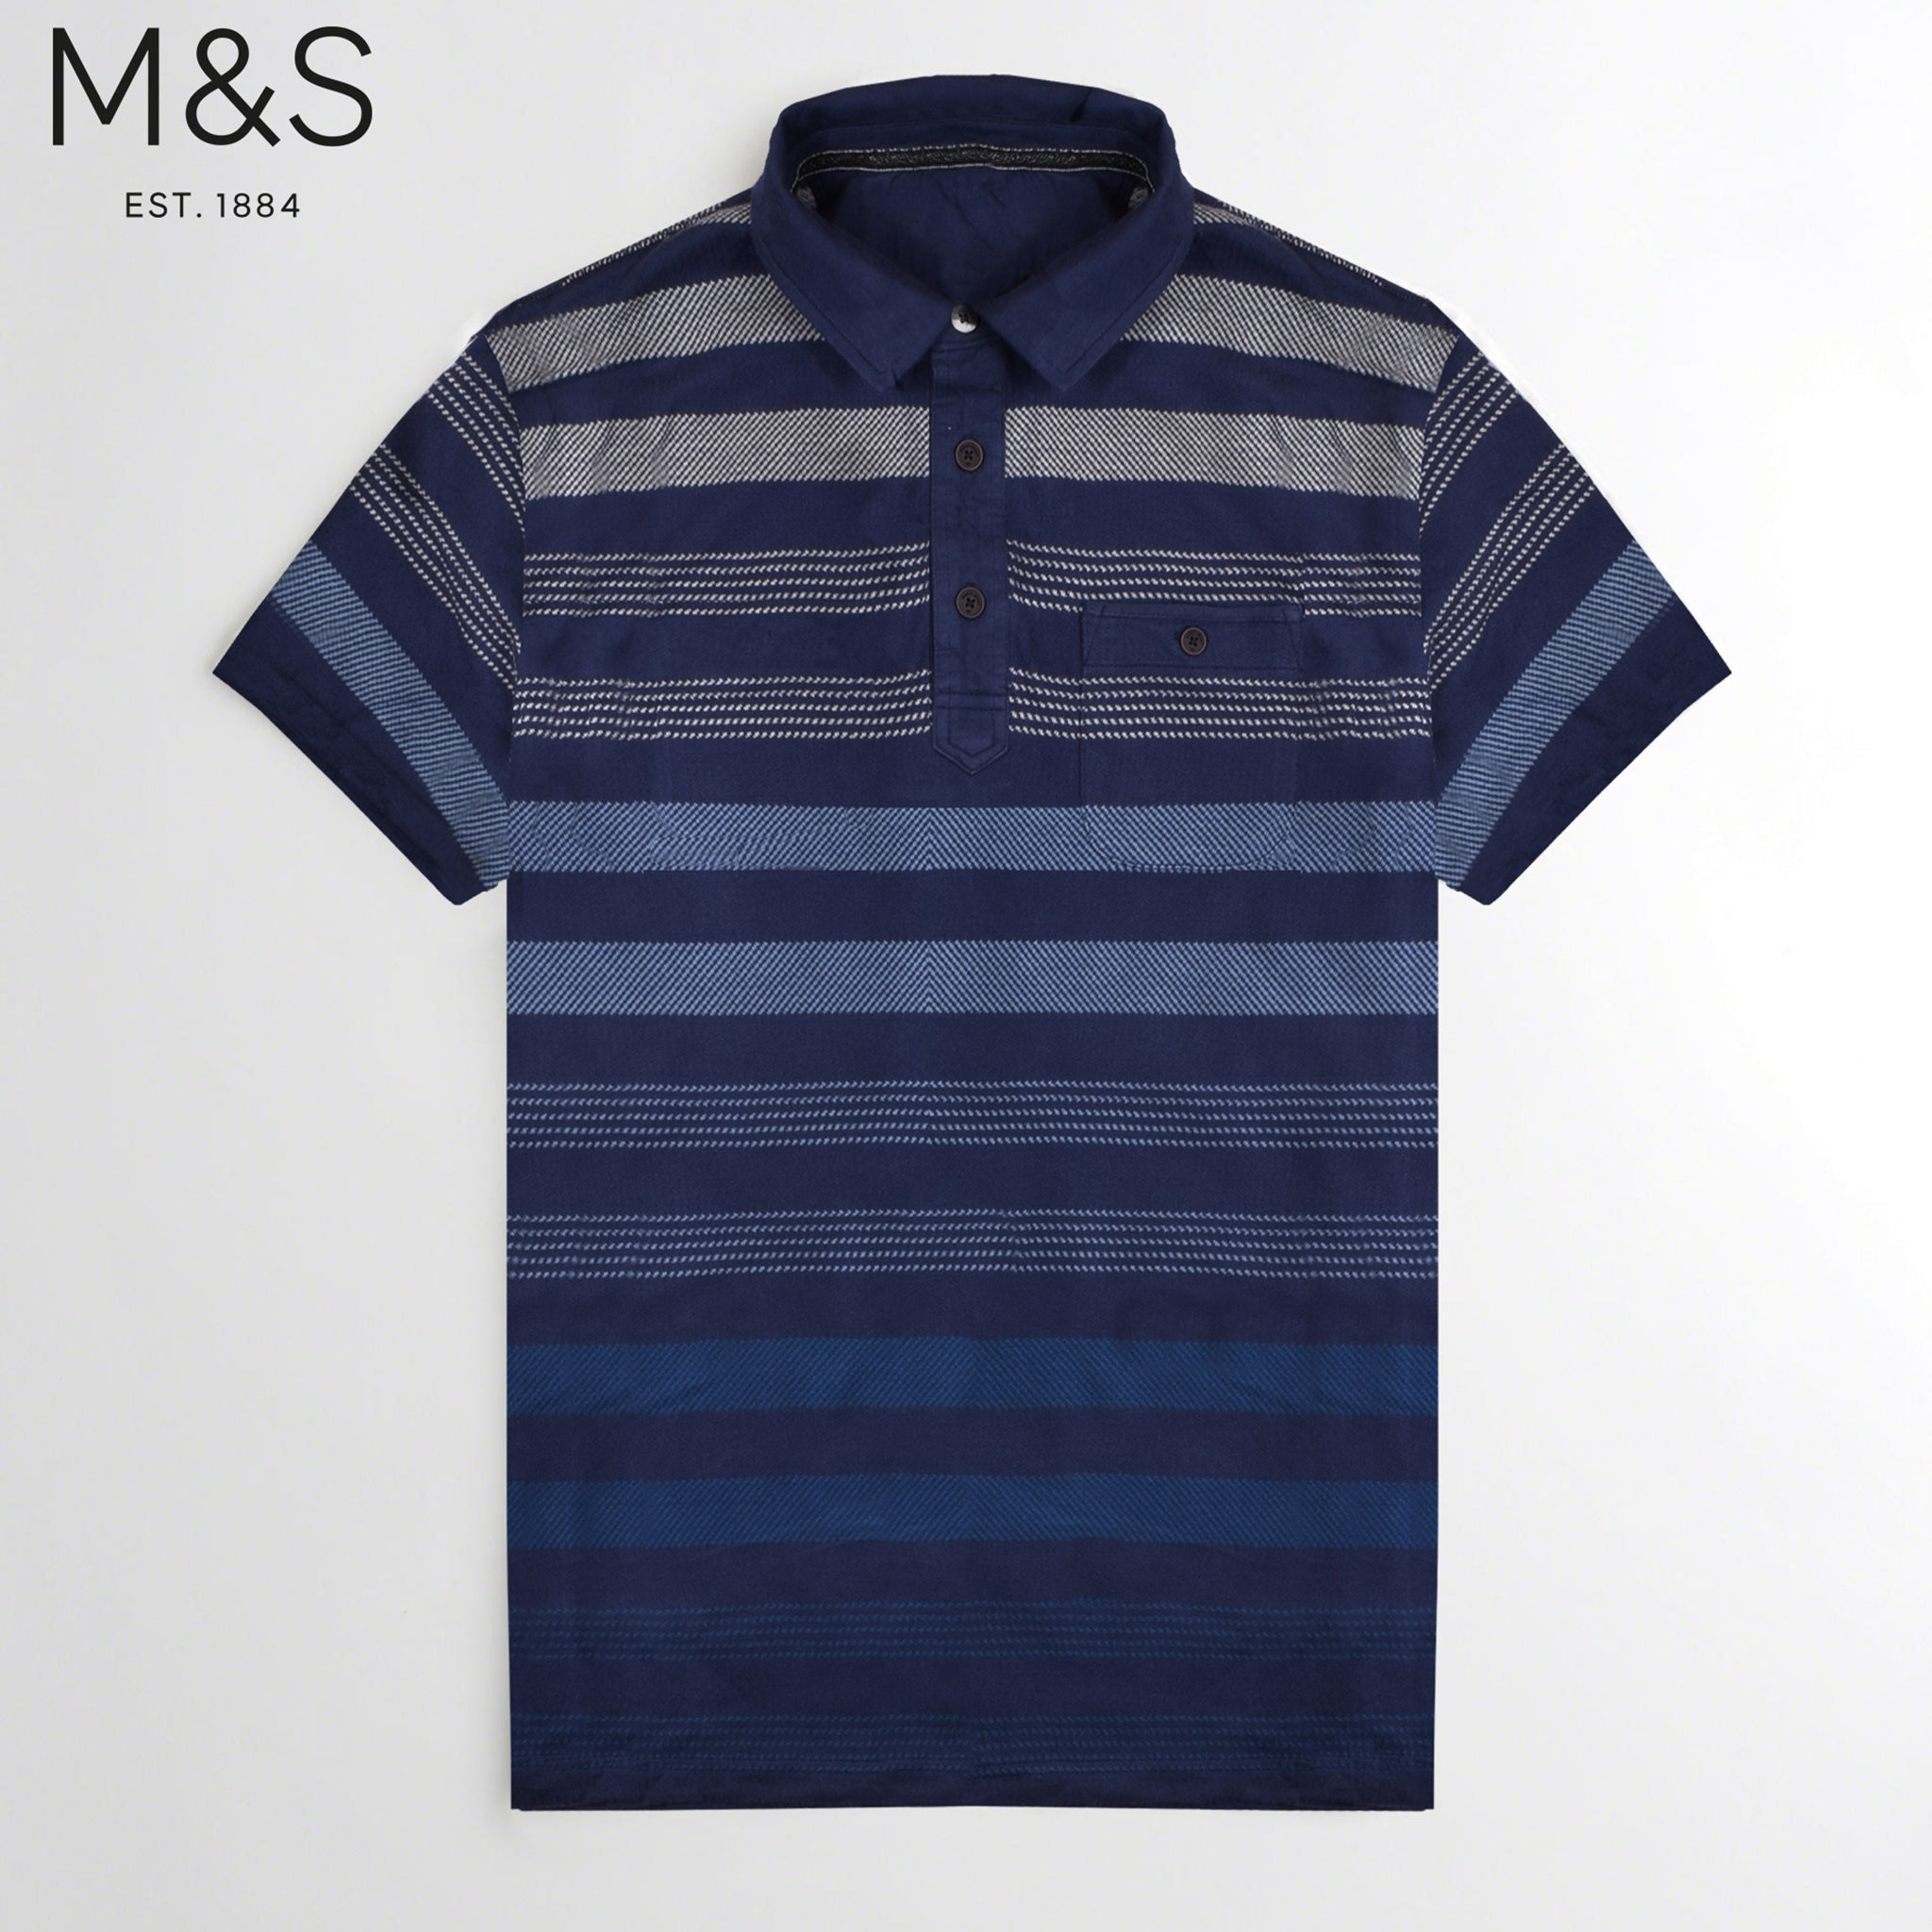 M&S Single Jersey Multi Striper Polo Shirt For Men-Dark Navy-NA841